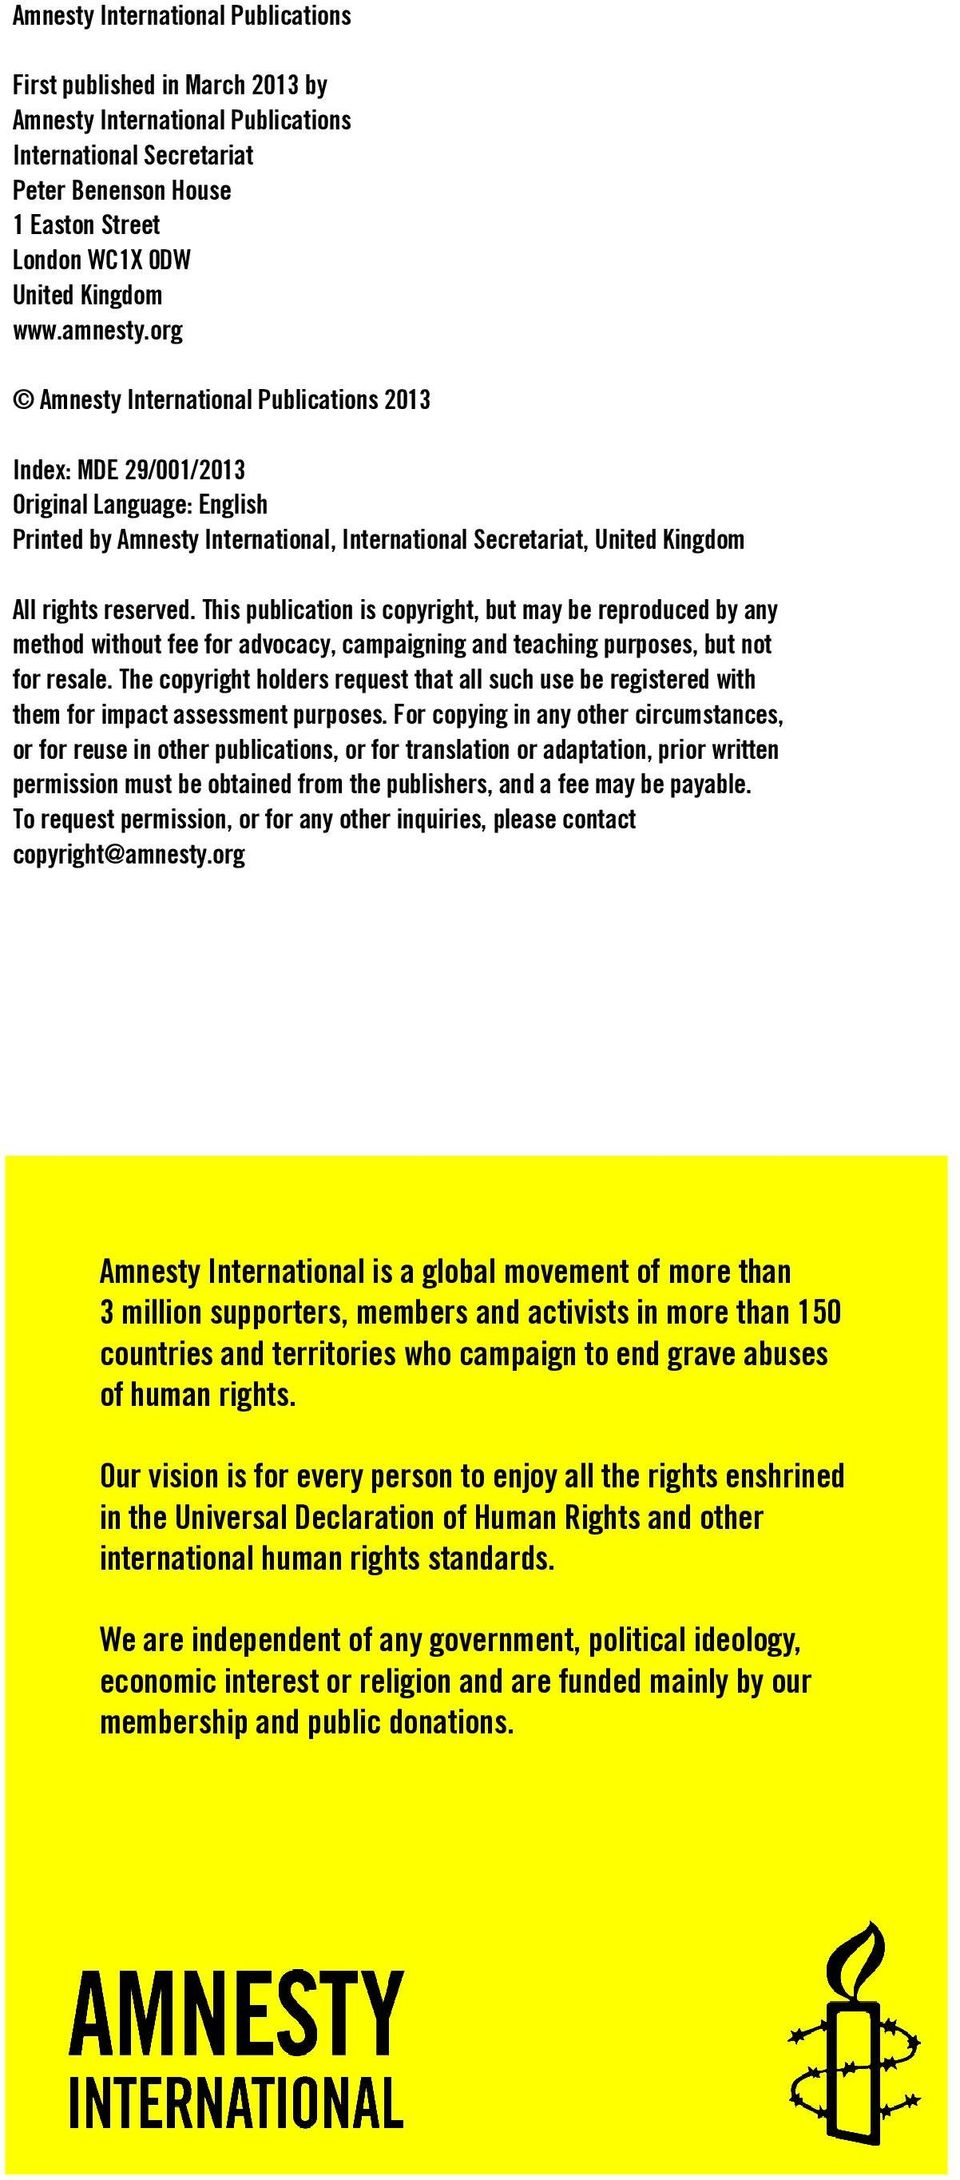 org Amnesty International Publications 2013 Index: MDE 29/001/2013 Original Language: English Printed by Amnesty International, International Secretariat, United Kingdom All rights reserved.